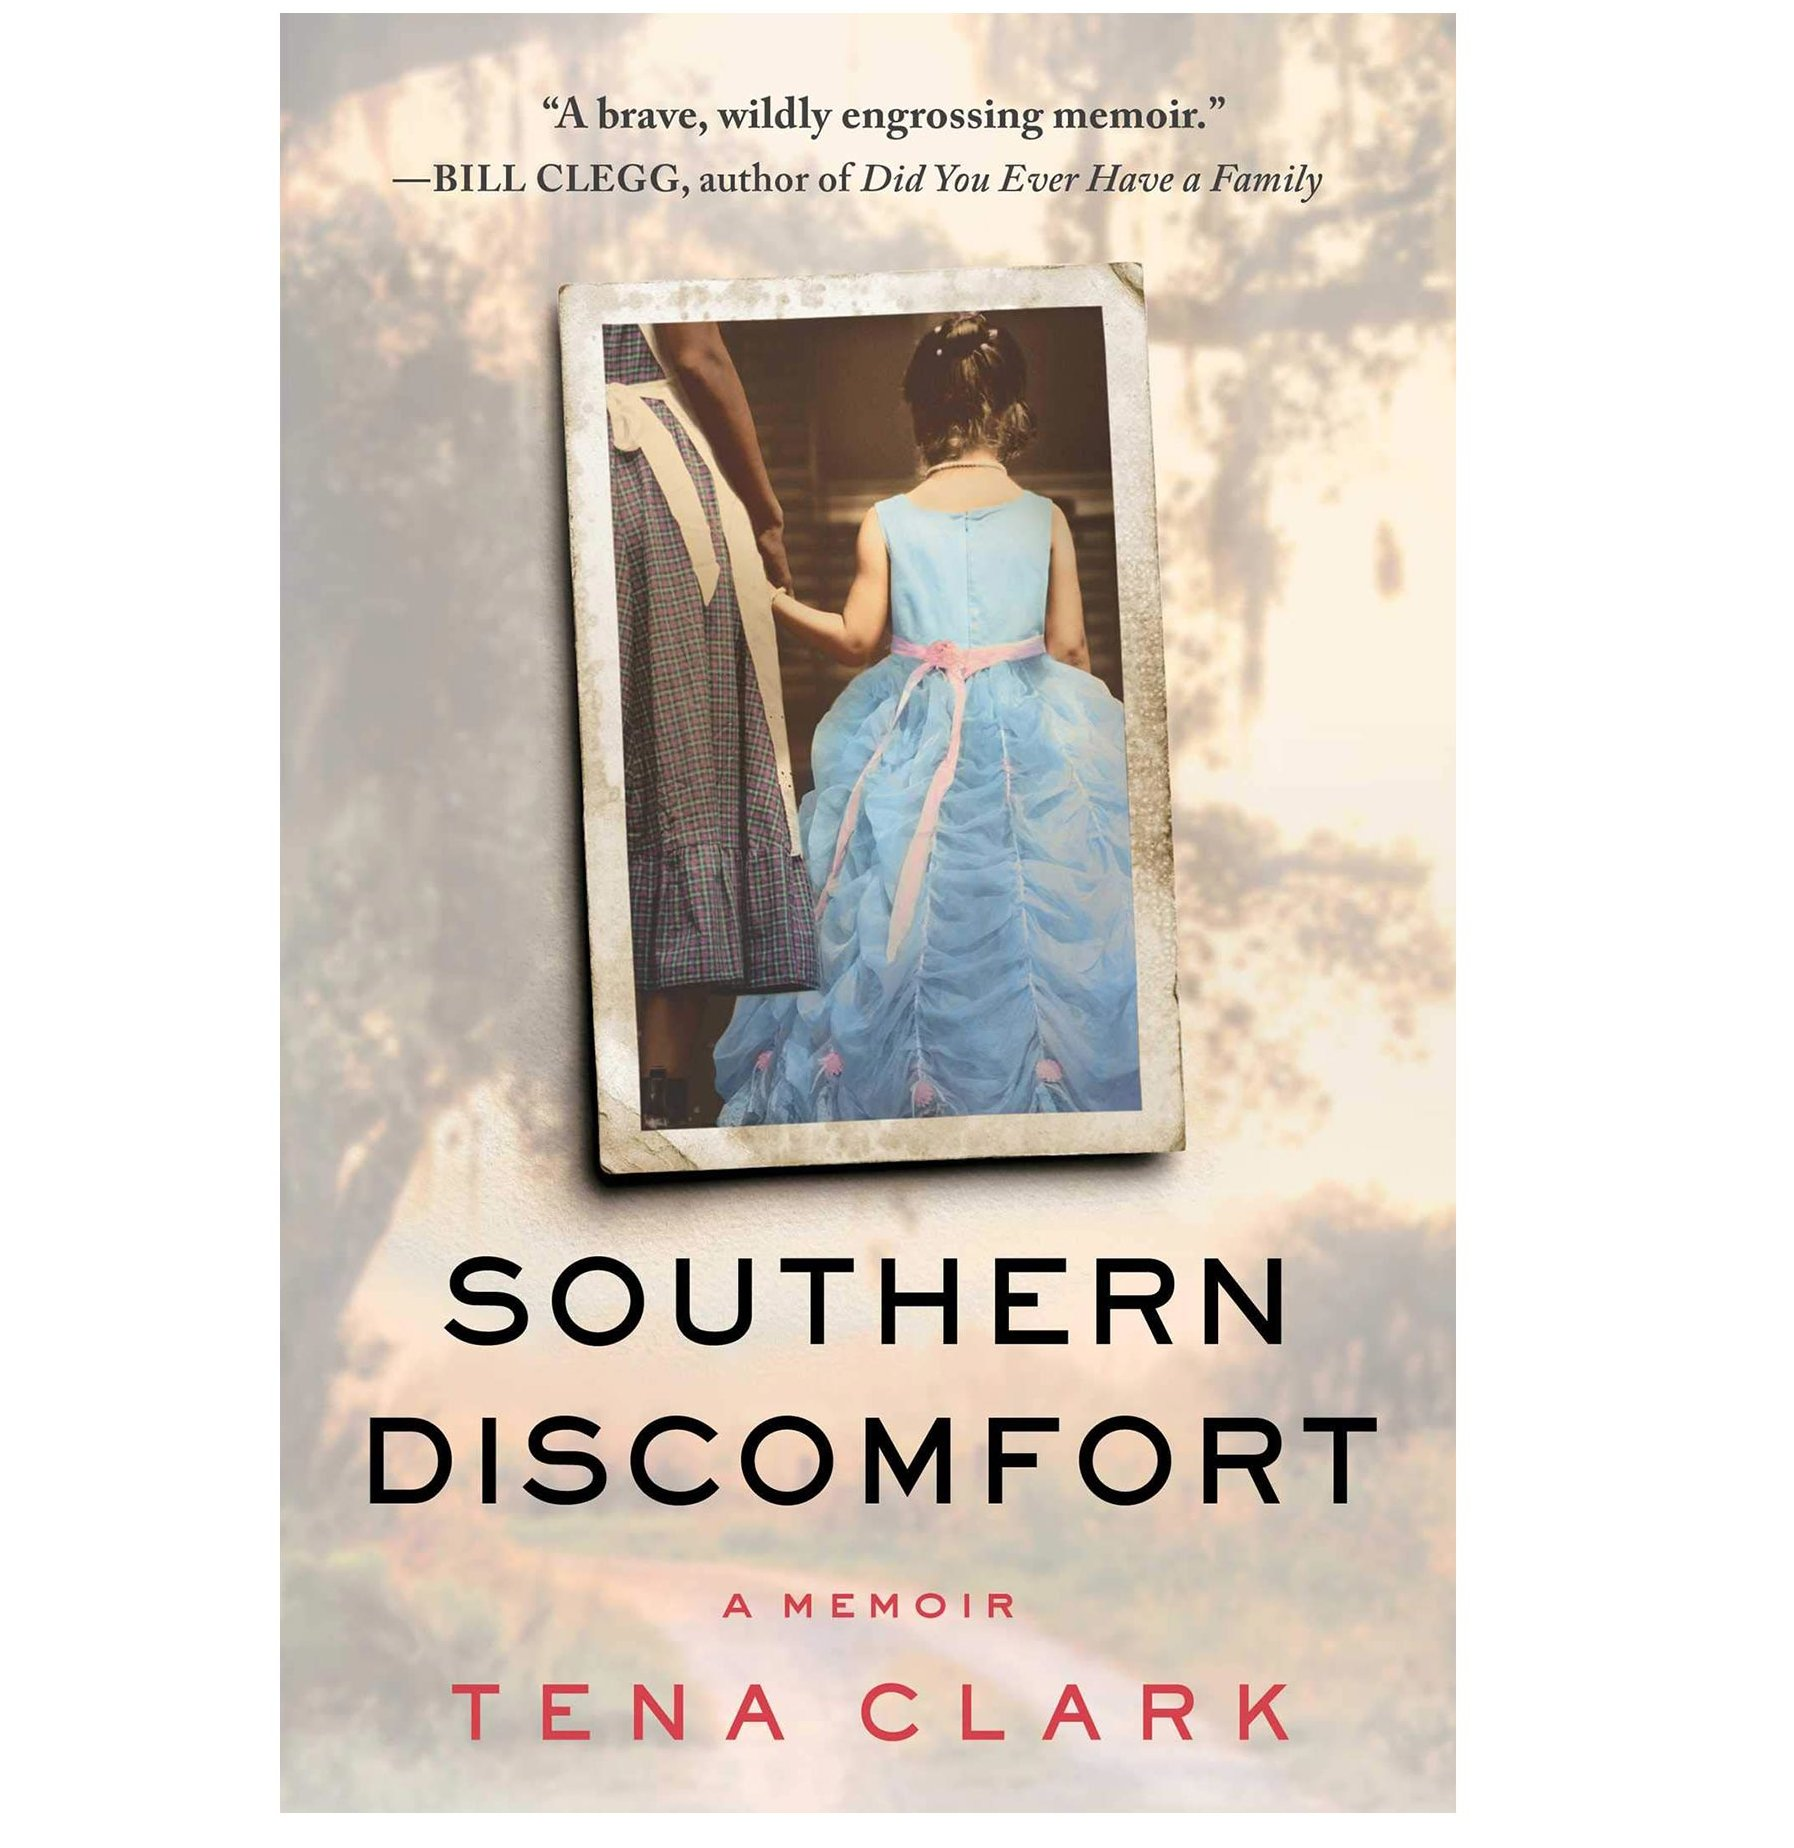 Southern Discomfort by Tena Clark